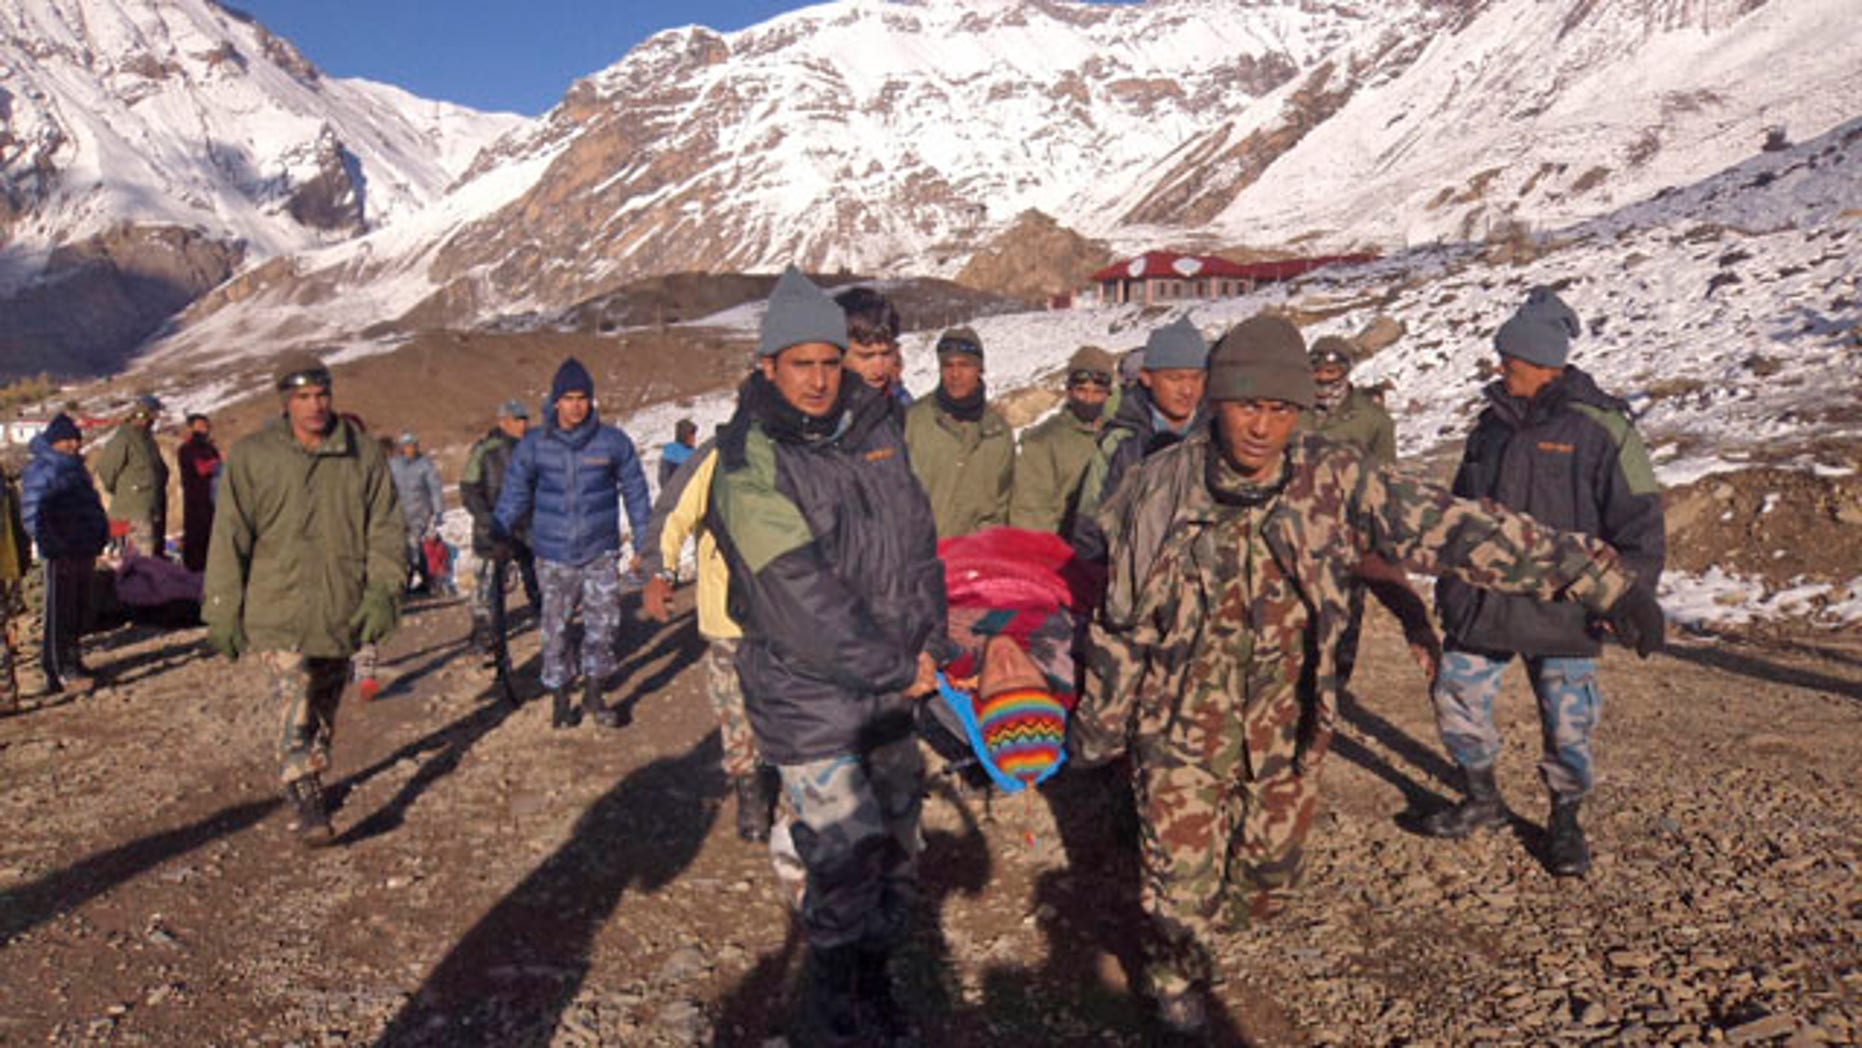 October 15, 2014: In this photo provided by the Nepalese army, soldiers carry an avalanche victim before he is airlifted in Thorong La pass area. (AP Photo/Nepalese Army)